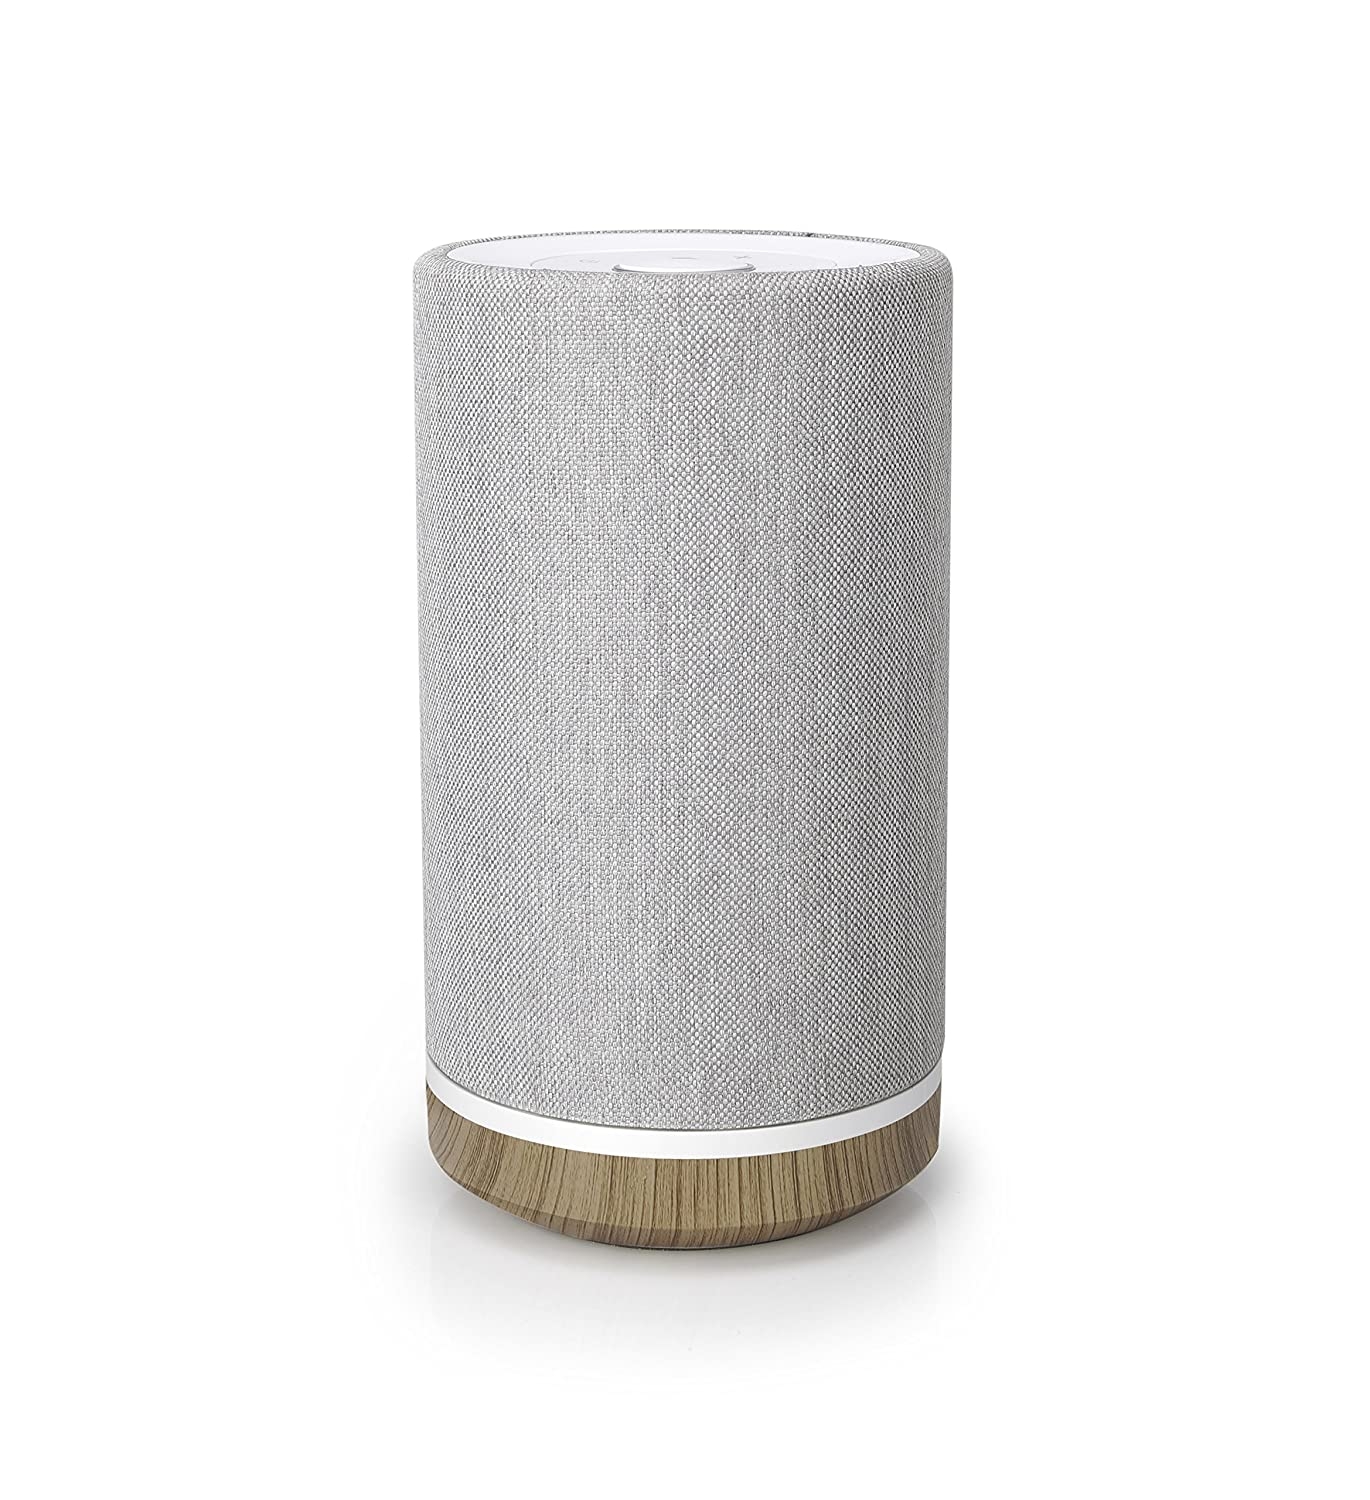 Knit Audio Otto, KW71, Medium Tower Bluetooth Wireless Speaker with Rechargeable Battery, Compatible for Android and Apple, Light Gray/Wood Grain, 5.3'x5.3'x10' 5.3x5.3x10